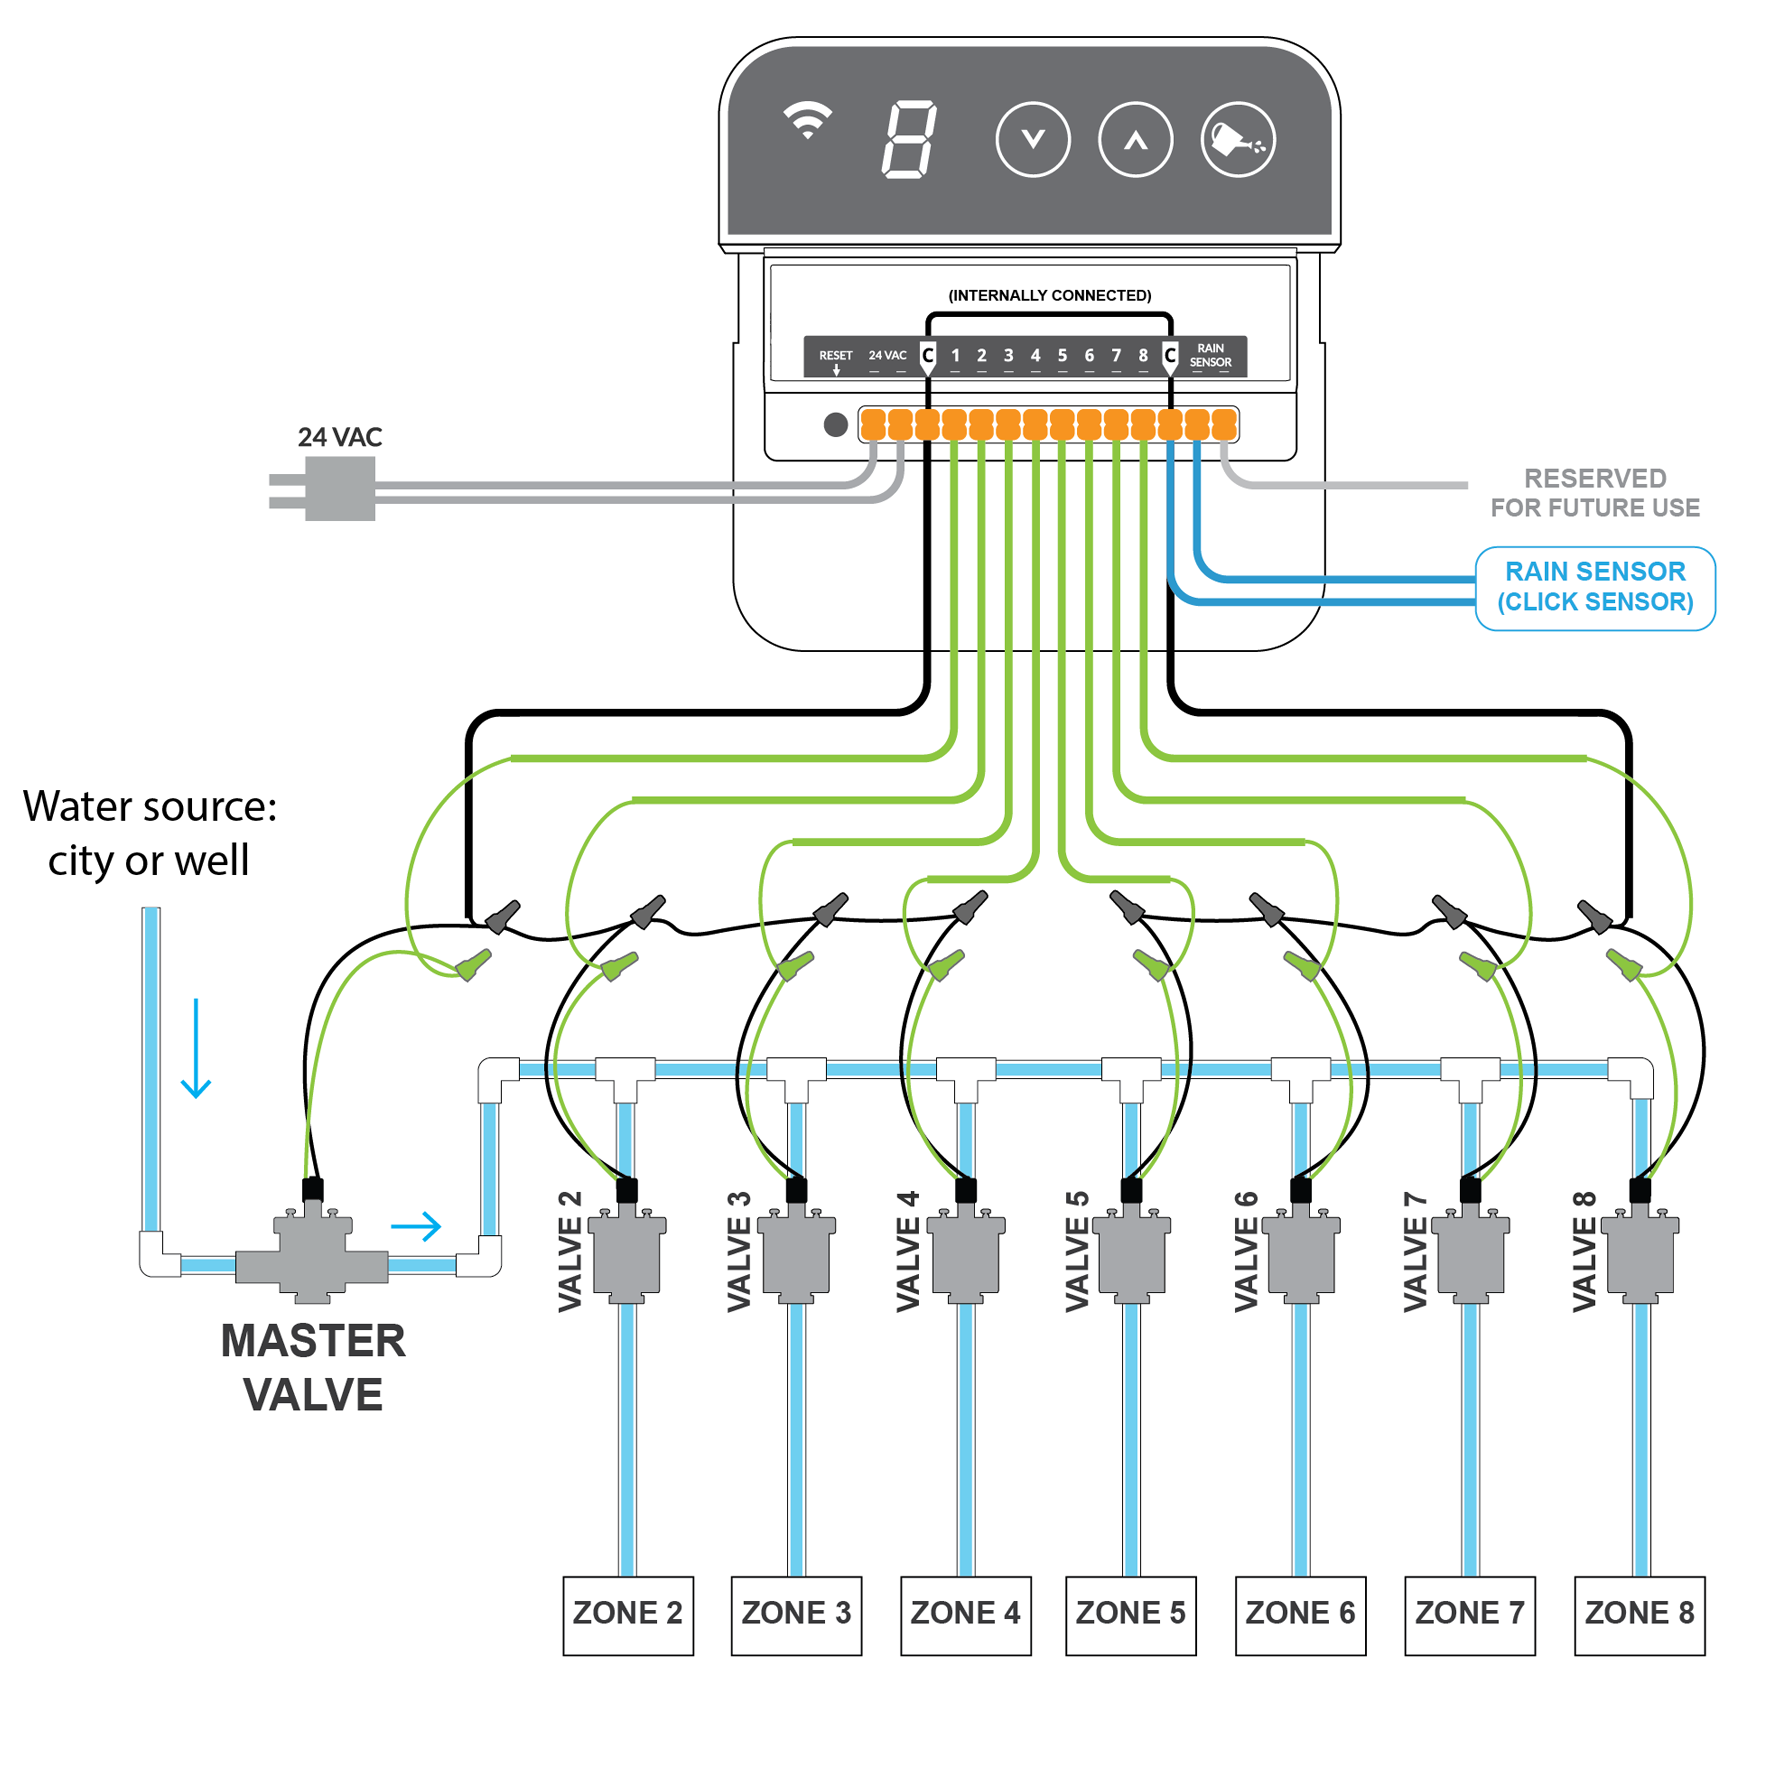 master valve and relay rainmachine